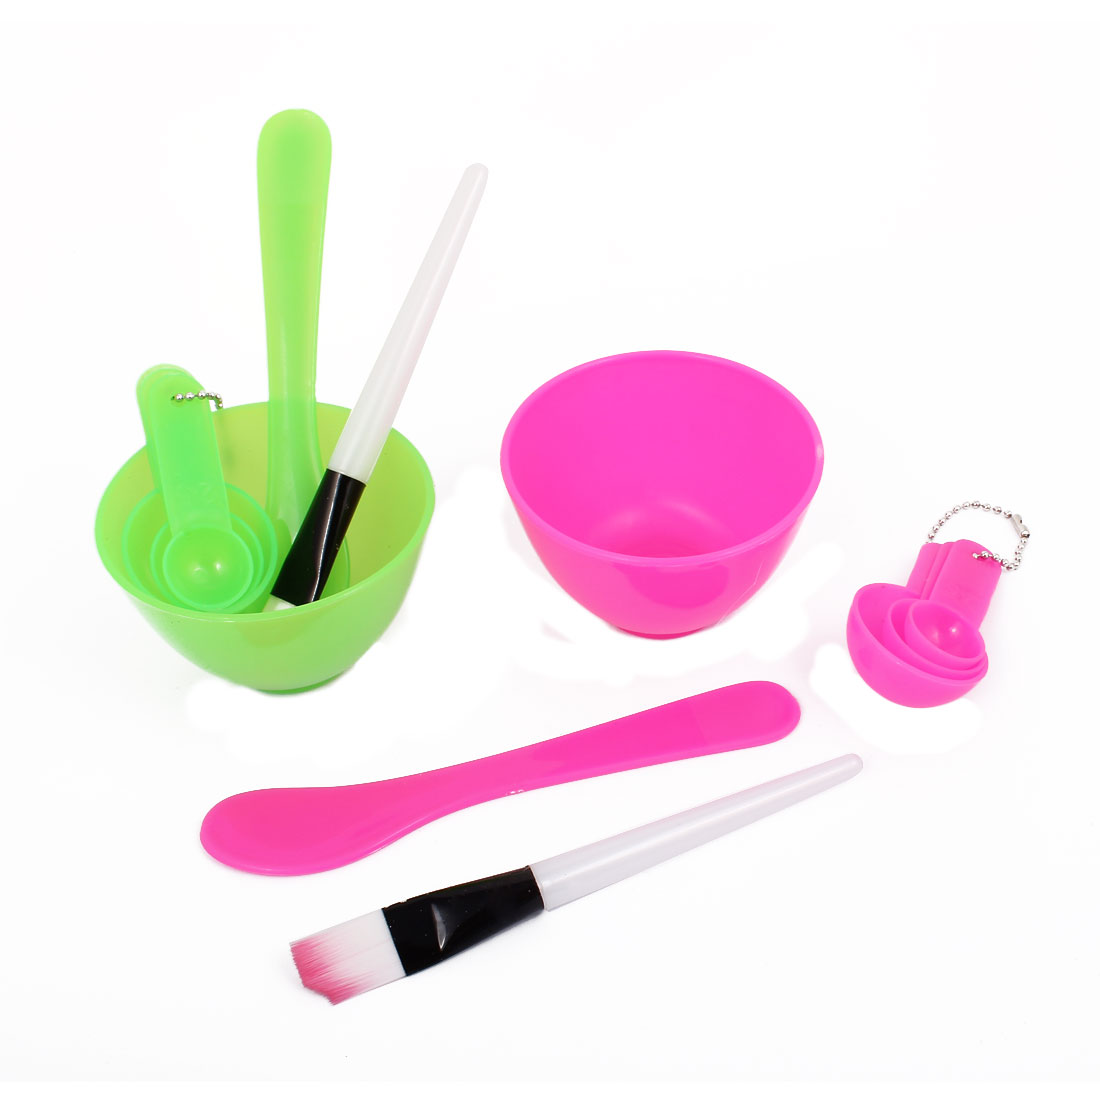 Home Plastic Facial Mask Bowl Measuring Spoon Stick Brush Green Fuchsia 2 Sets